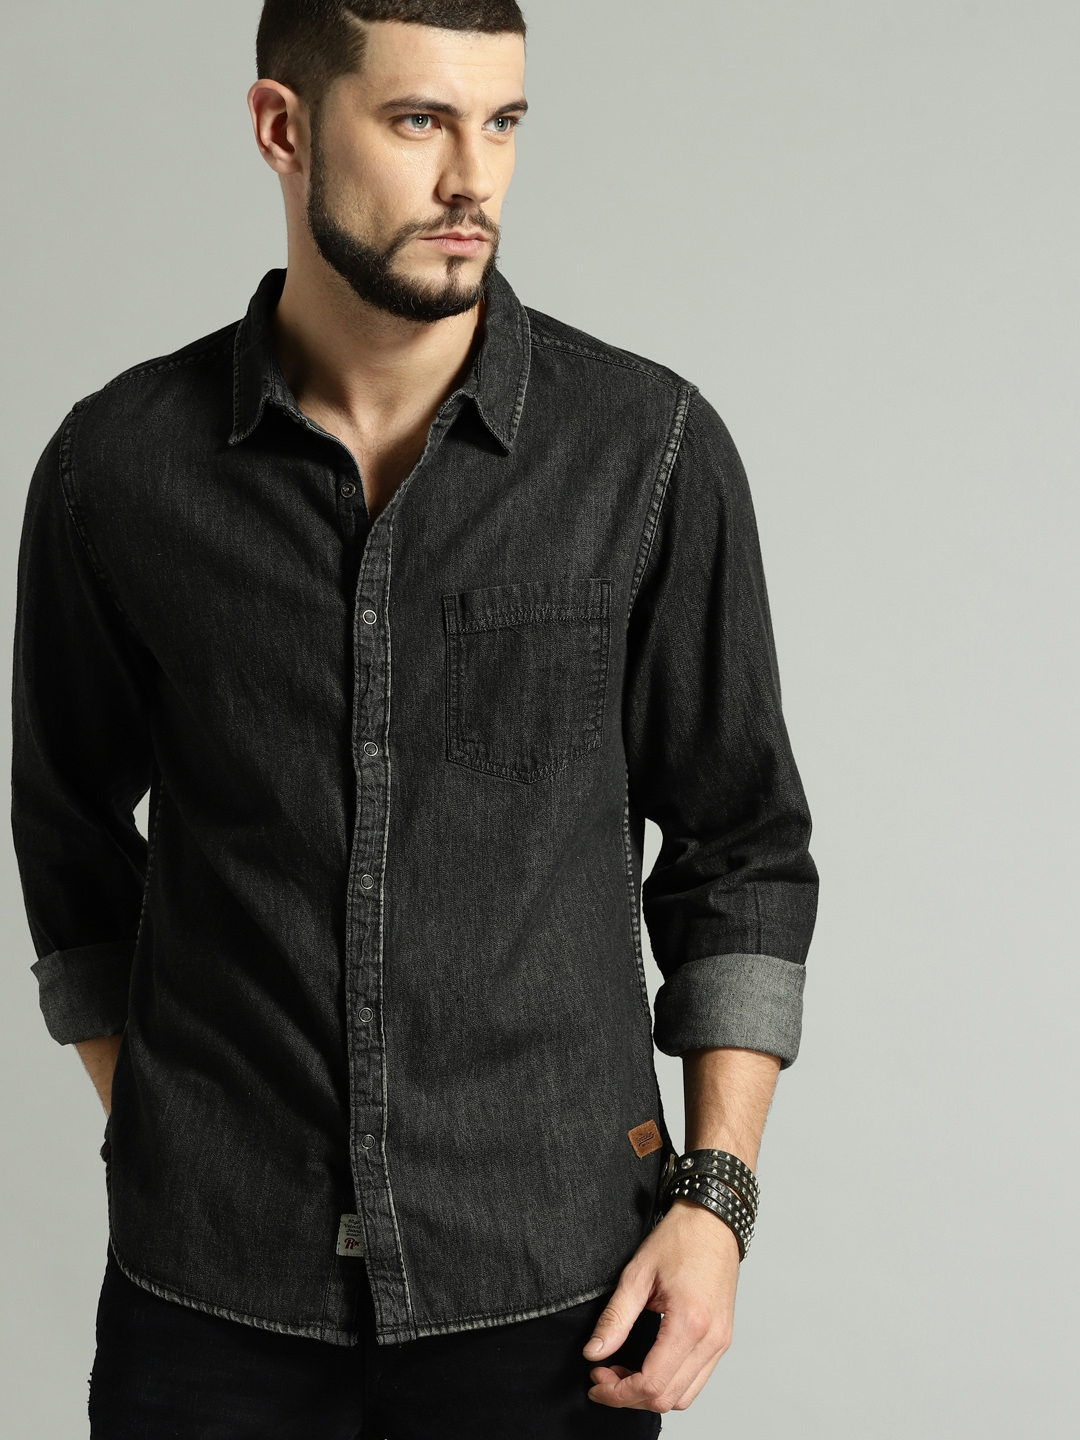 92ddb6d7713 Buy Roadster Men Black Regular Fit Faded Casual Denim Shirt - Shirts ...